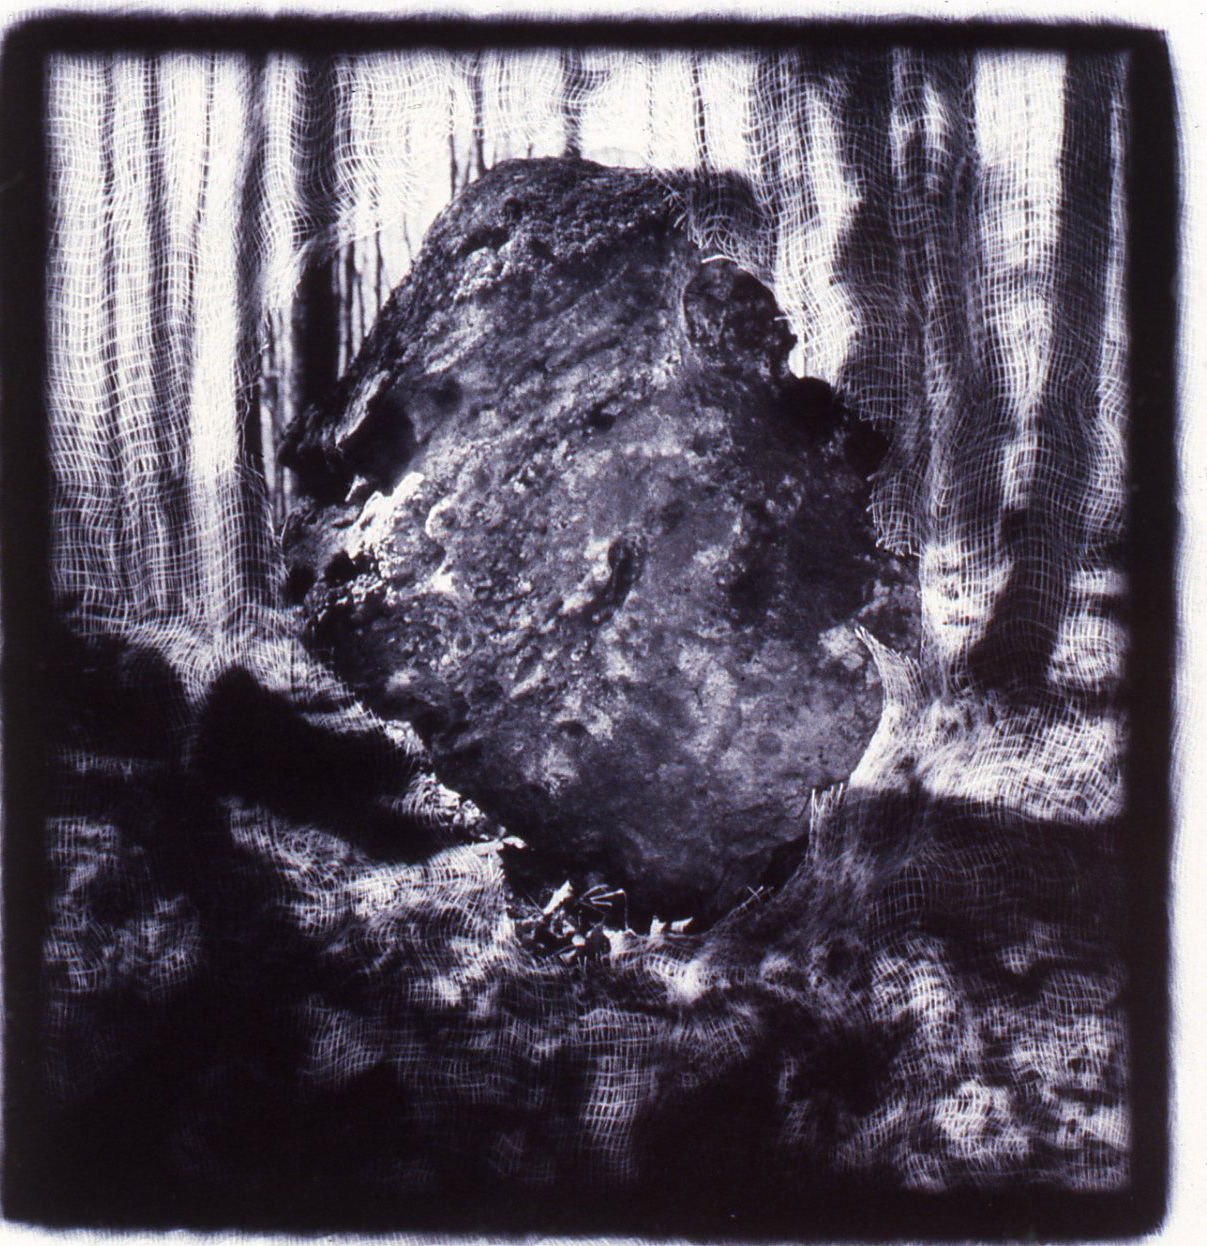 Passages Keystone,   Gelatin Silver print, 10x10 inches, 1989-1990, unique print